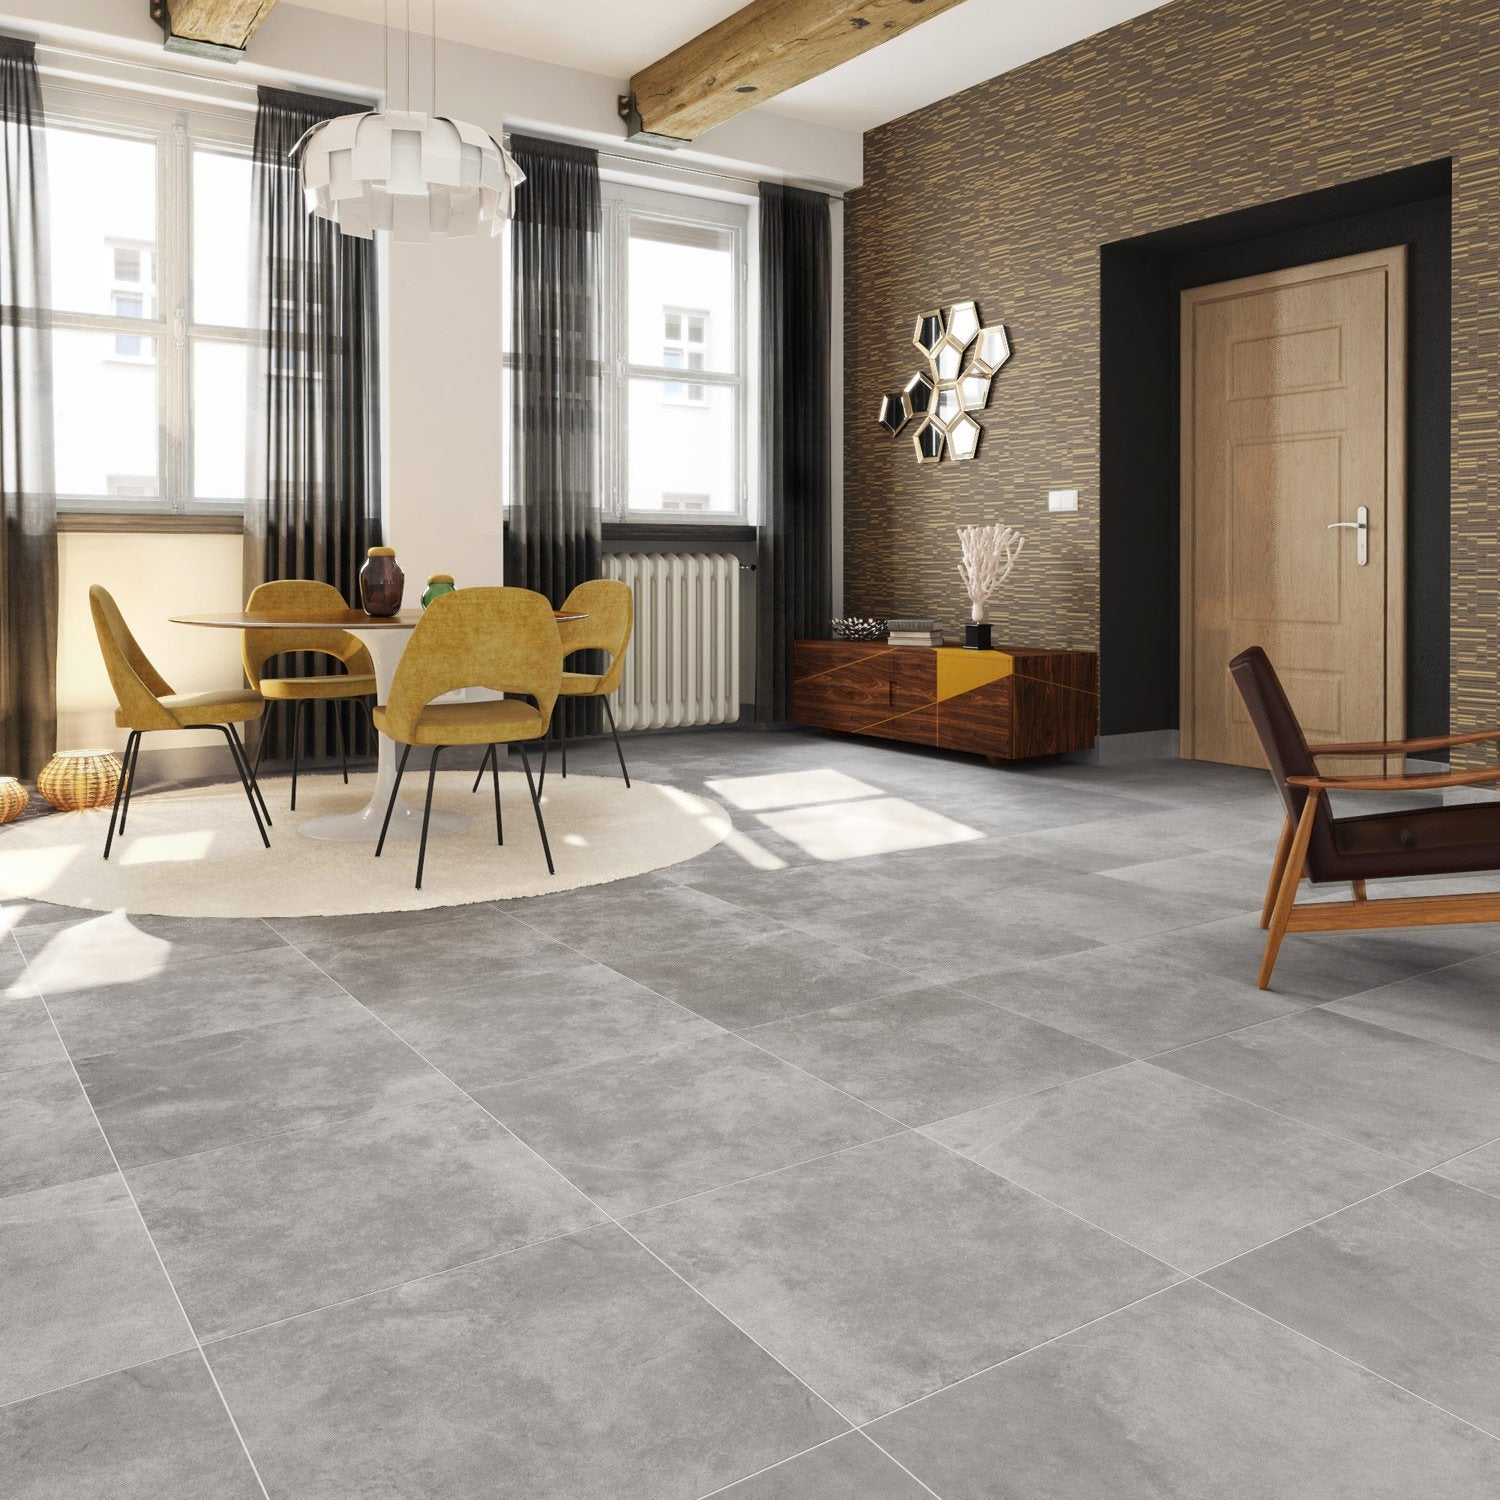 Carrelage sol et mur gris effet pierre atmosphere x l for Carrelage 70x70 gris